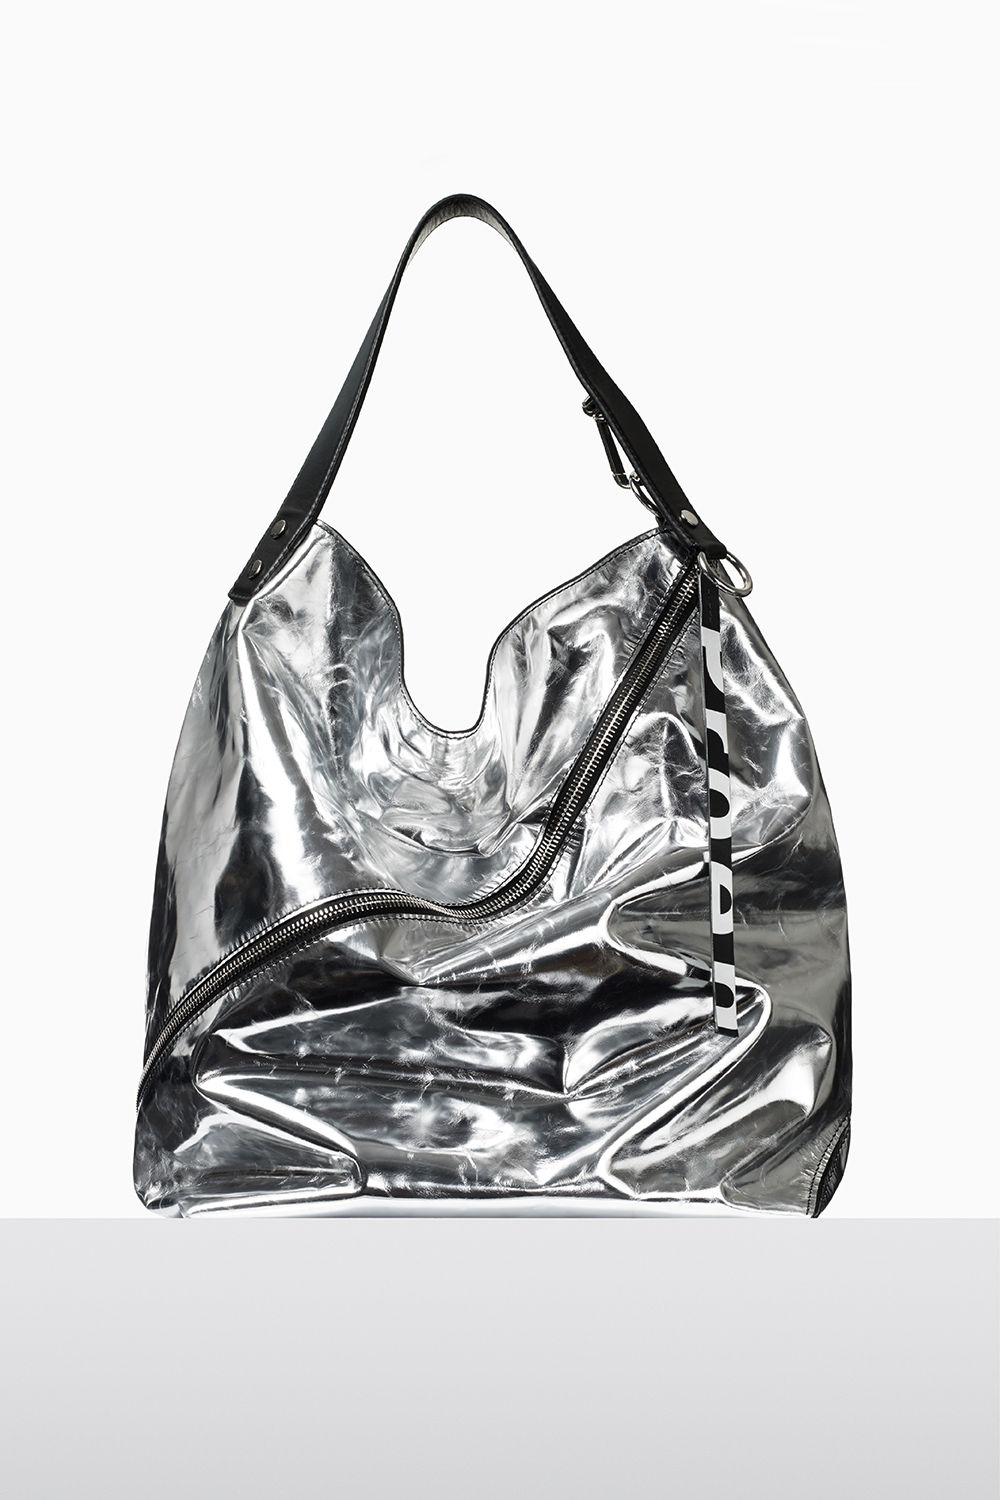 proenza schouler fall 2017 silver soft metallic leather medium hobo